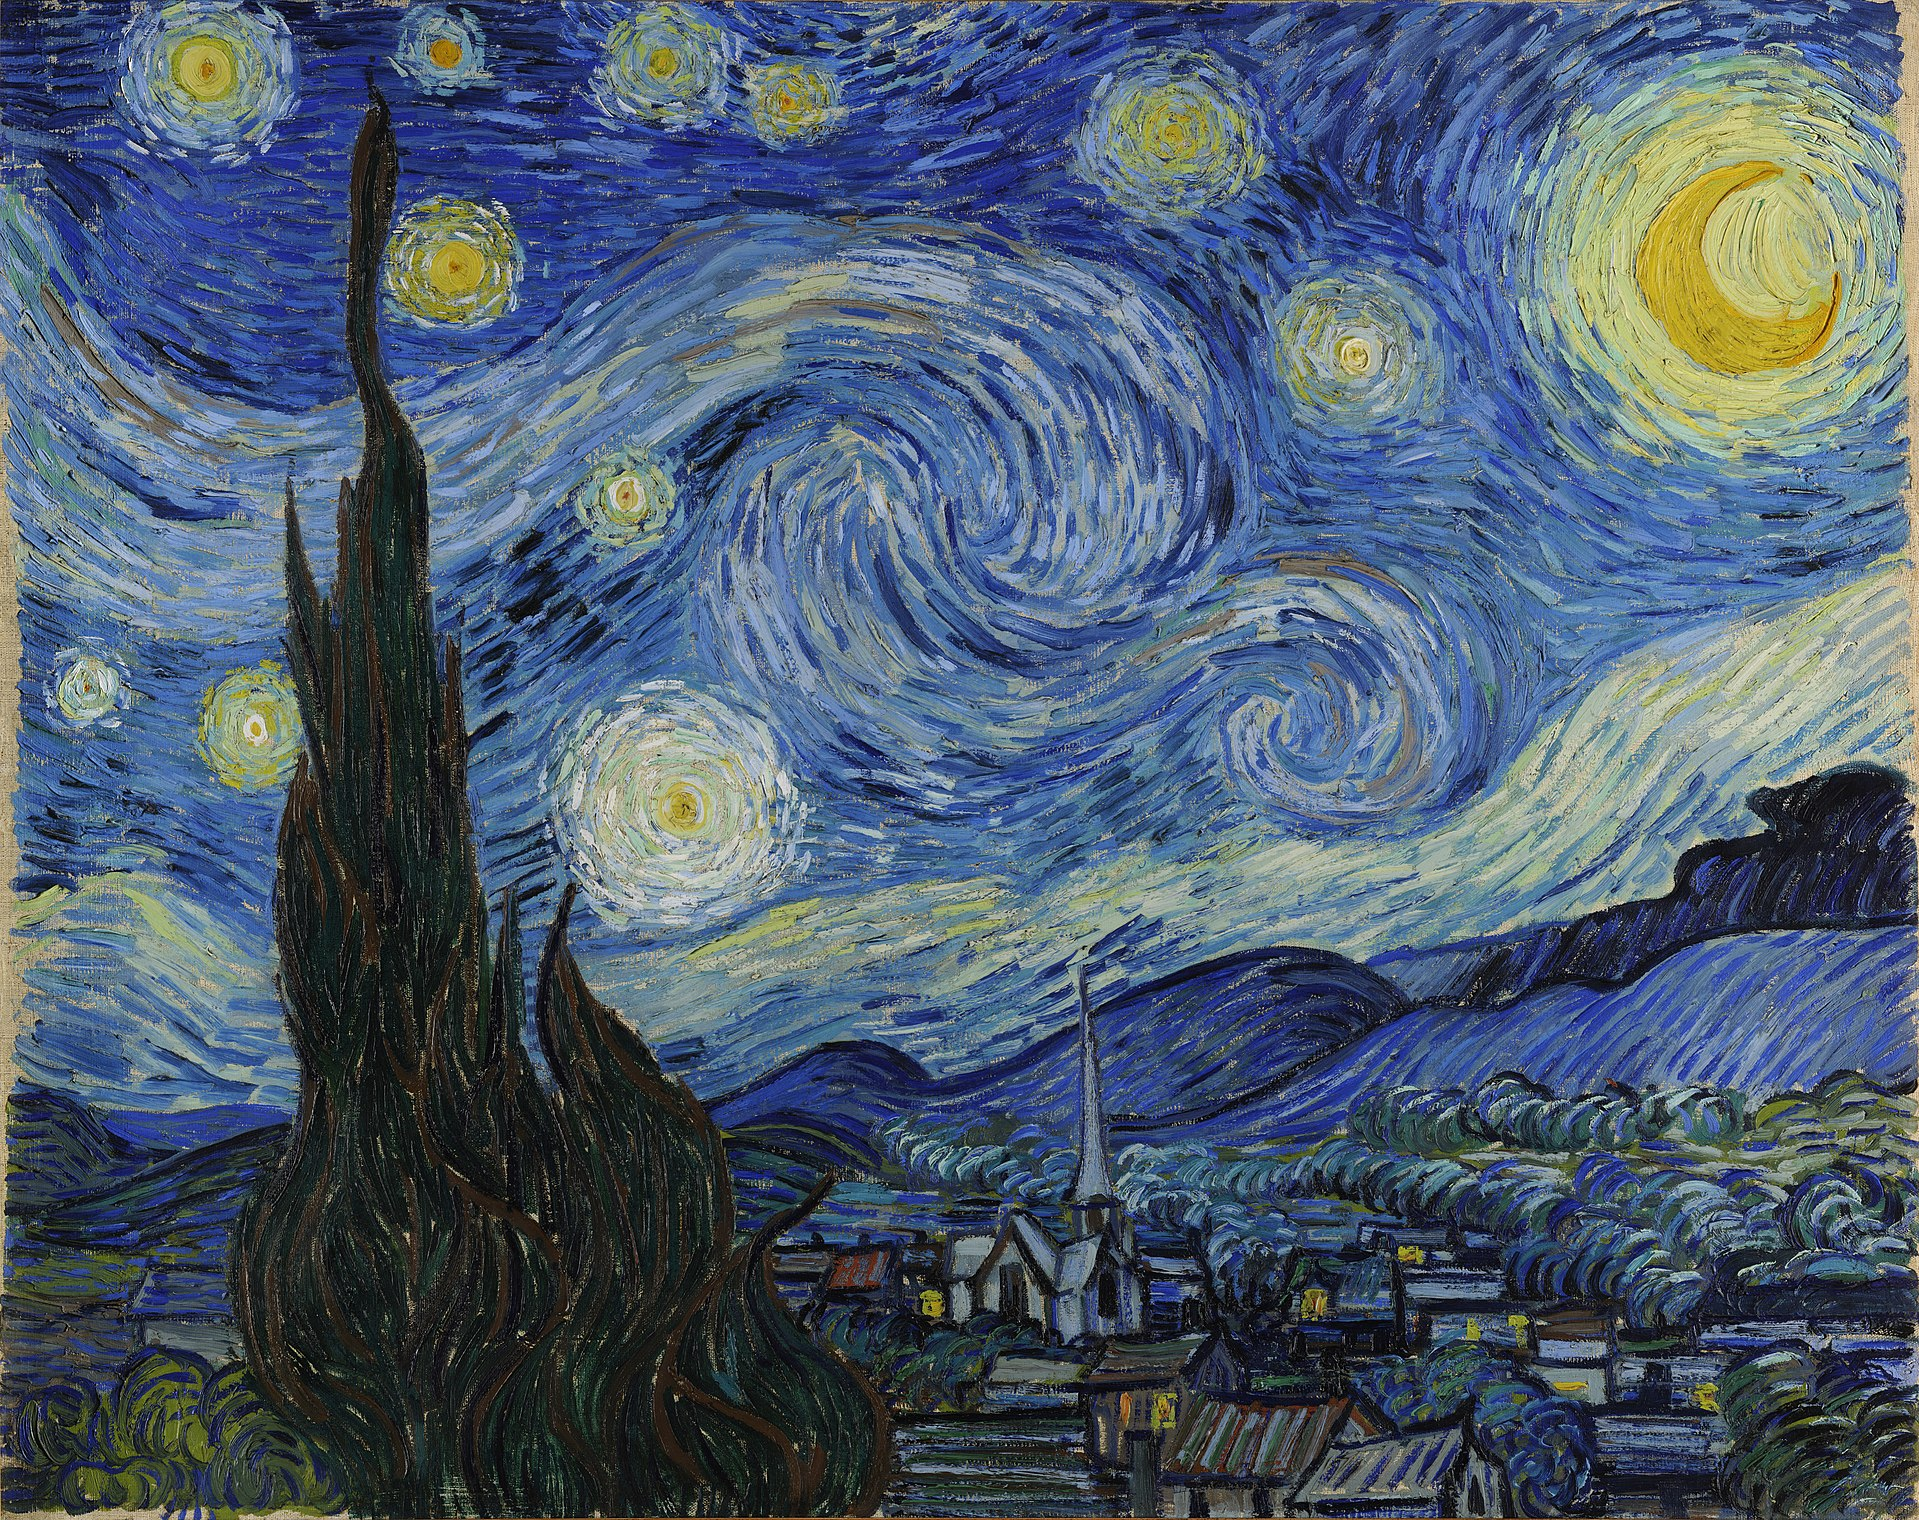 1920px Van Gogh   Starry Night   Google Art Project - Technique : la peinture à l'huile